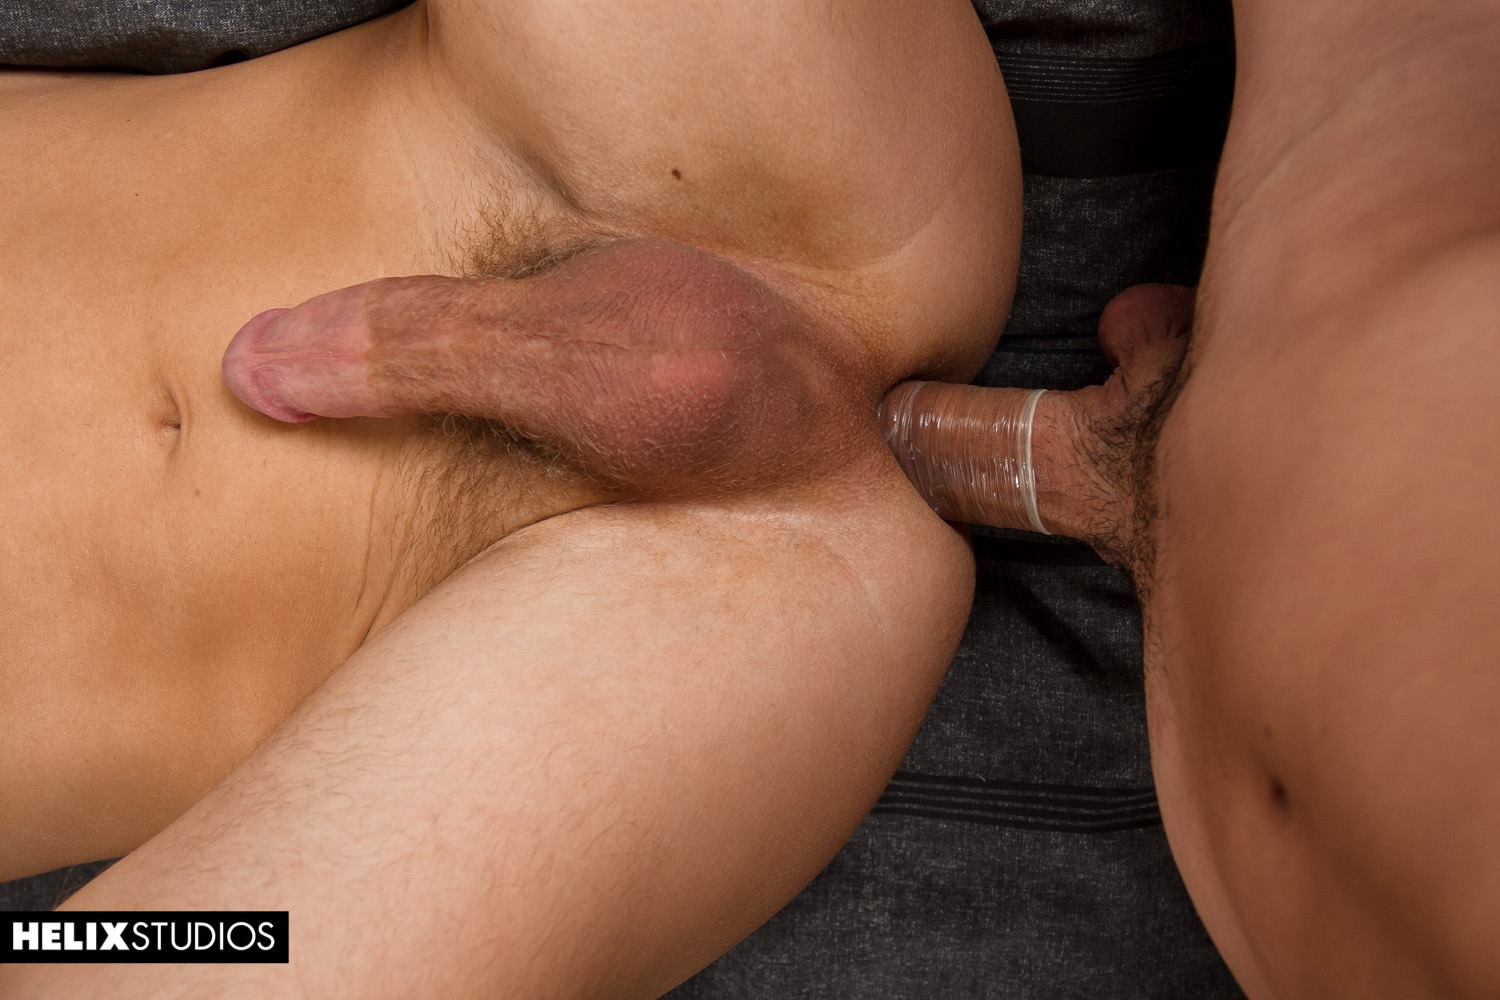 en escort gay mexico